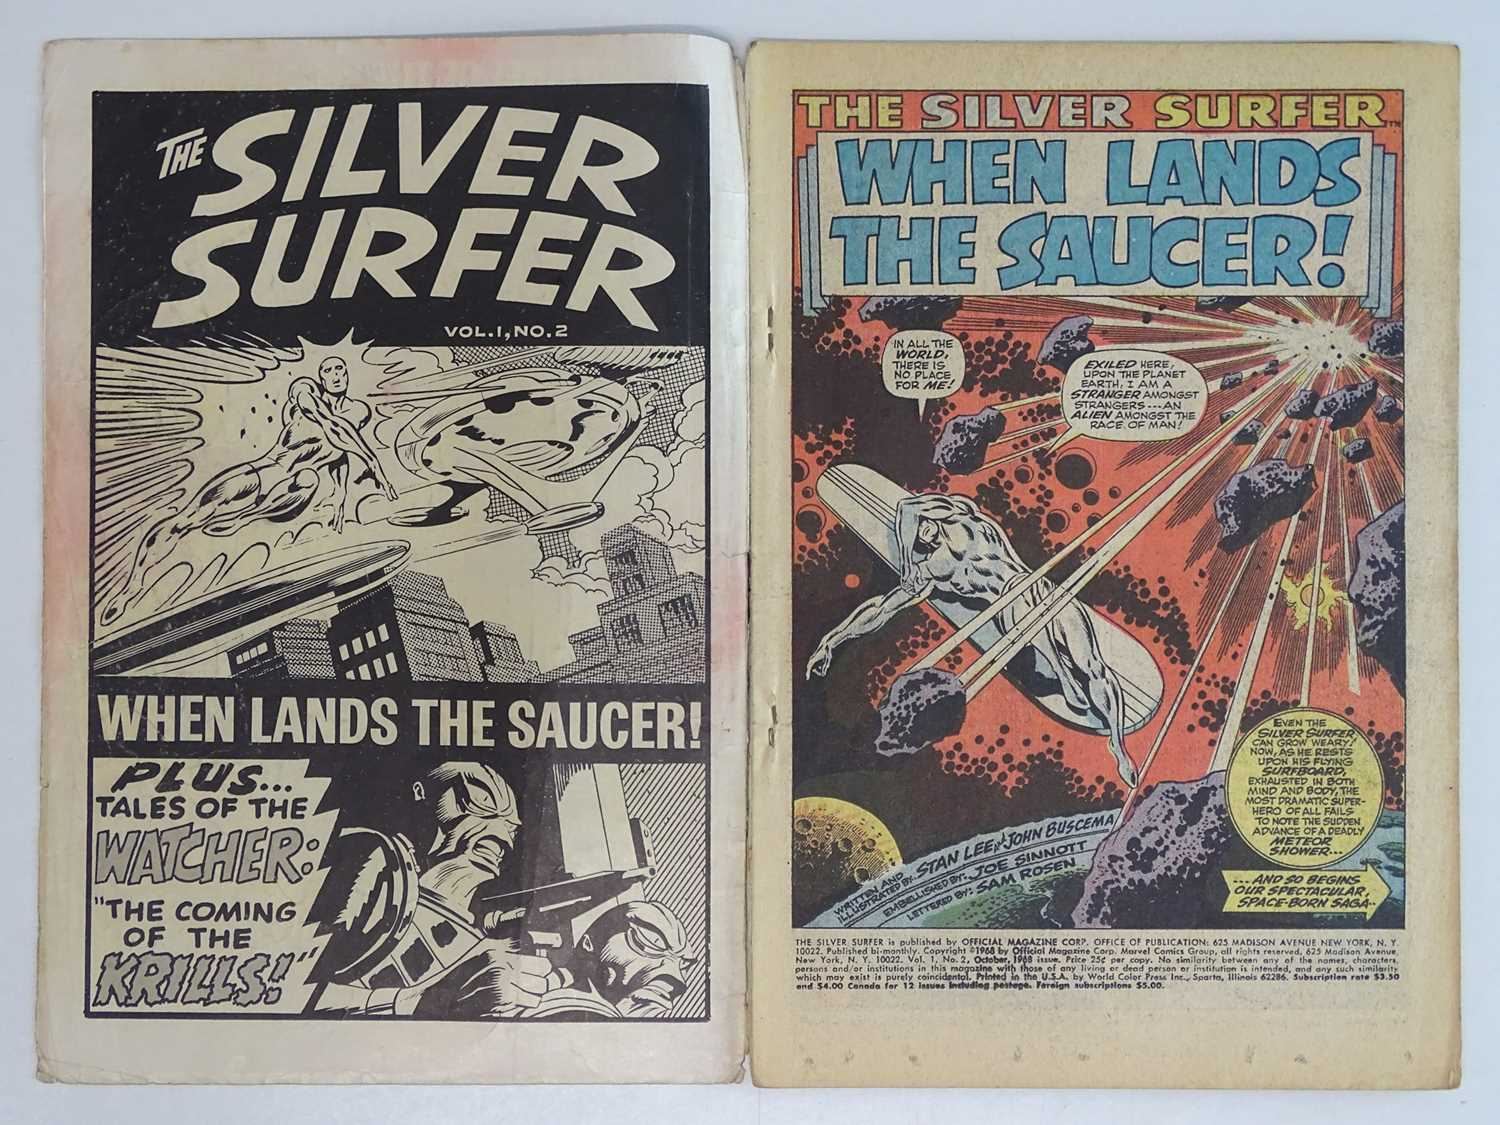 SILVER SURFER #2 - (1968 - MARVEL - UK Cover Price) - First appearance of the Brotherhood of - Image 3 of 9